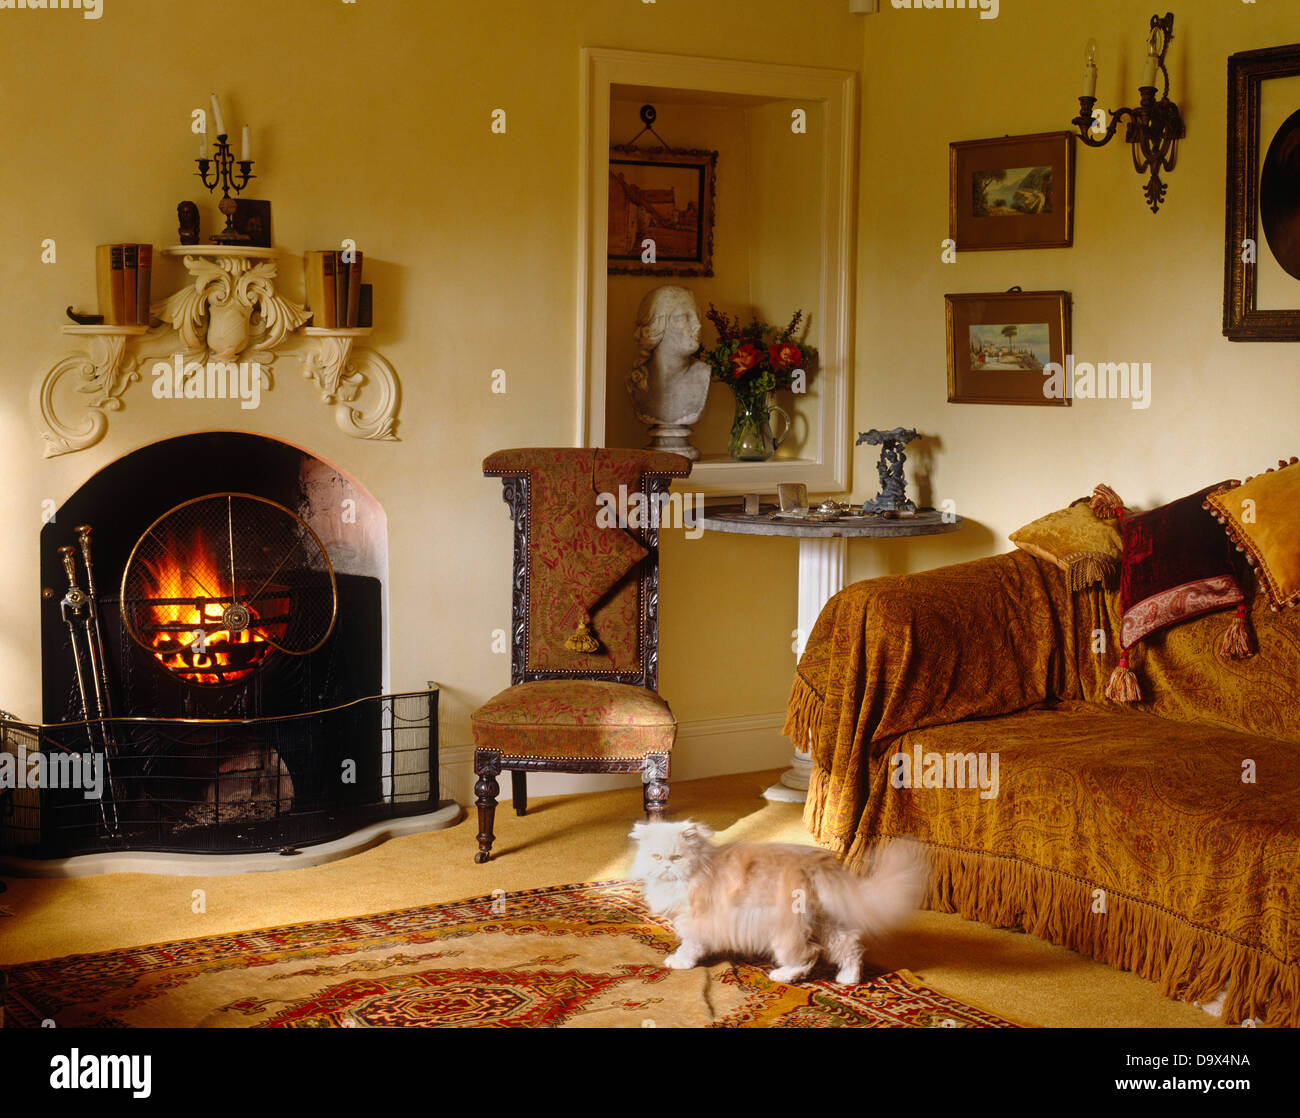 Gold Chenille Throw On Sofa In Country Sitting Room With Low Upholstered  Chair Beside Fireplace